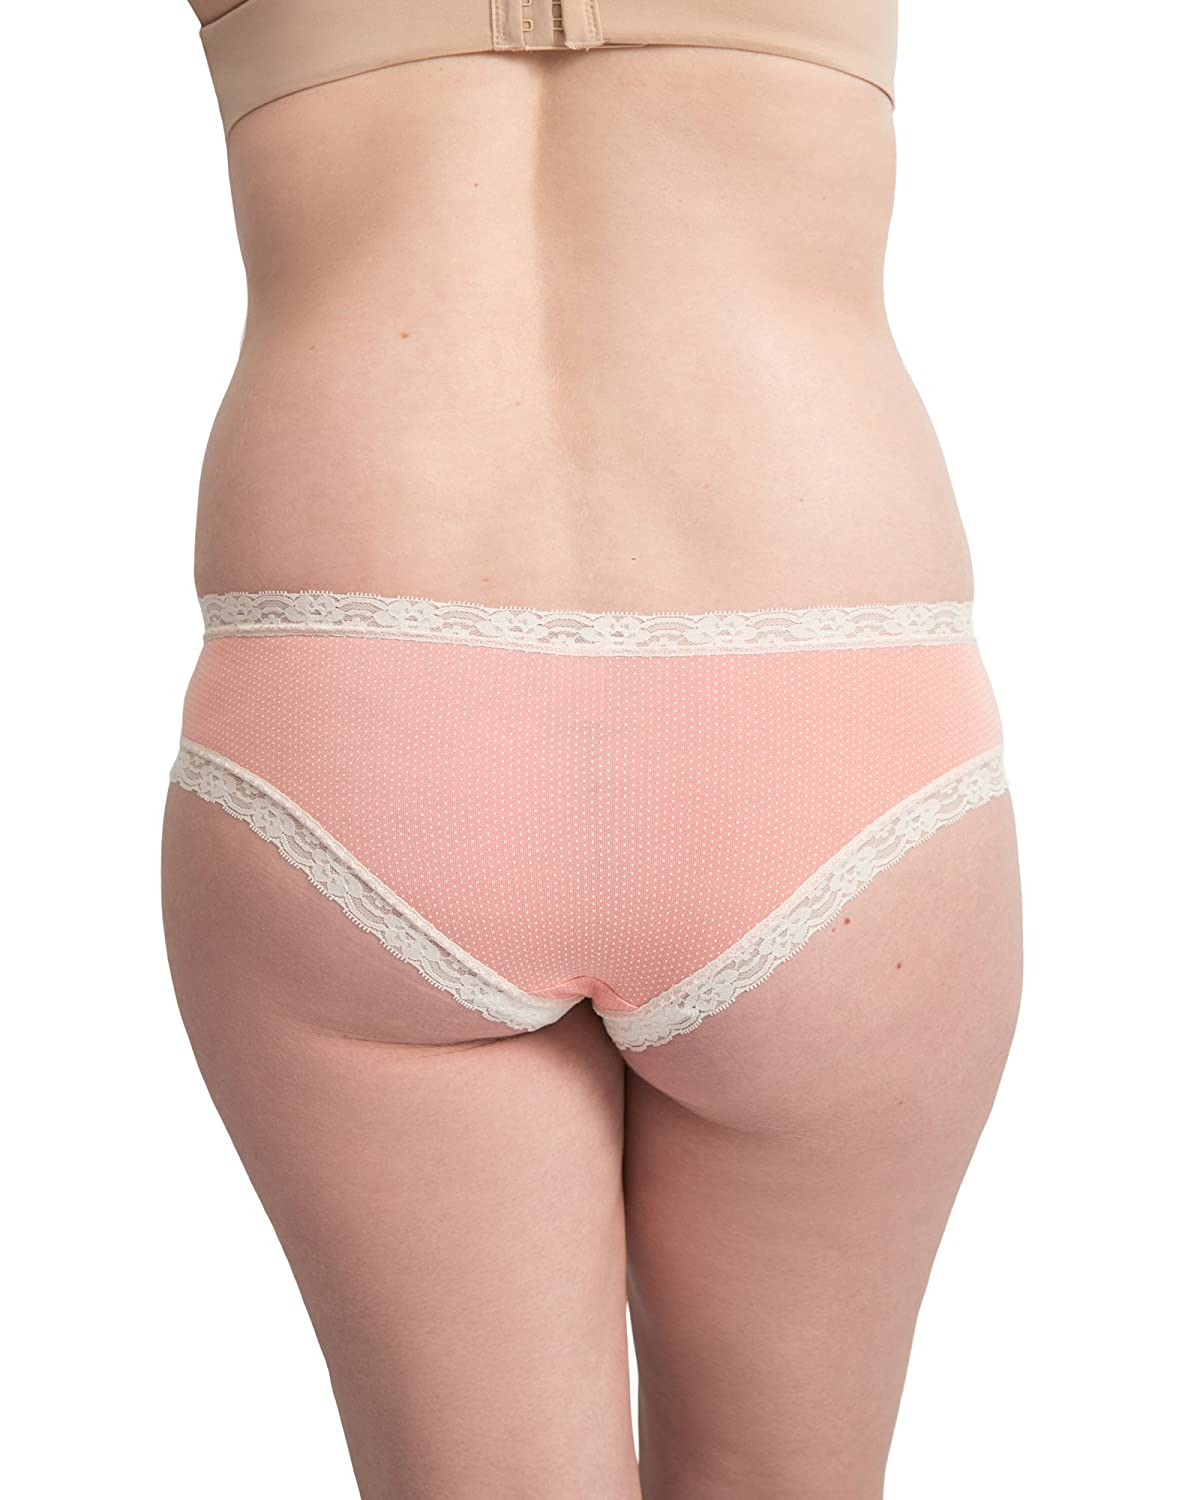 RelaxMaternity 5110 Cotton Over The Bump Maternity Thong